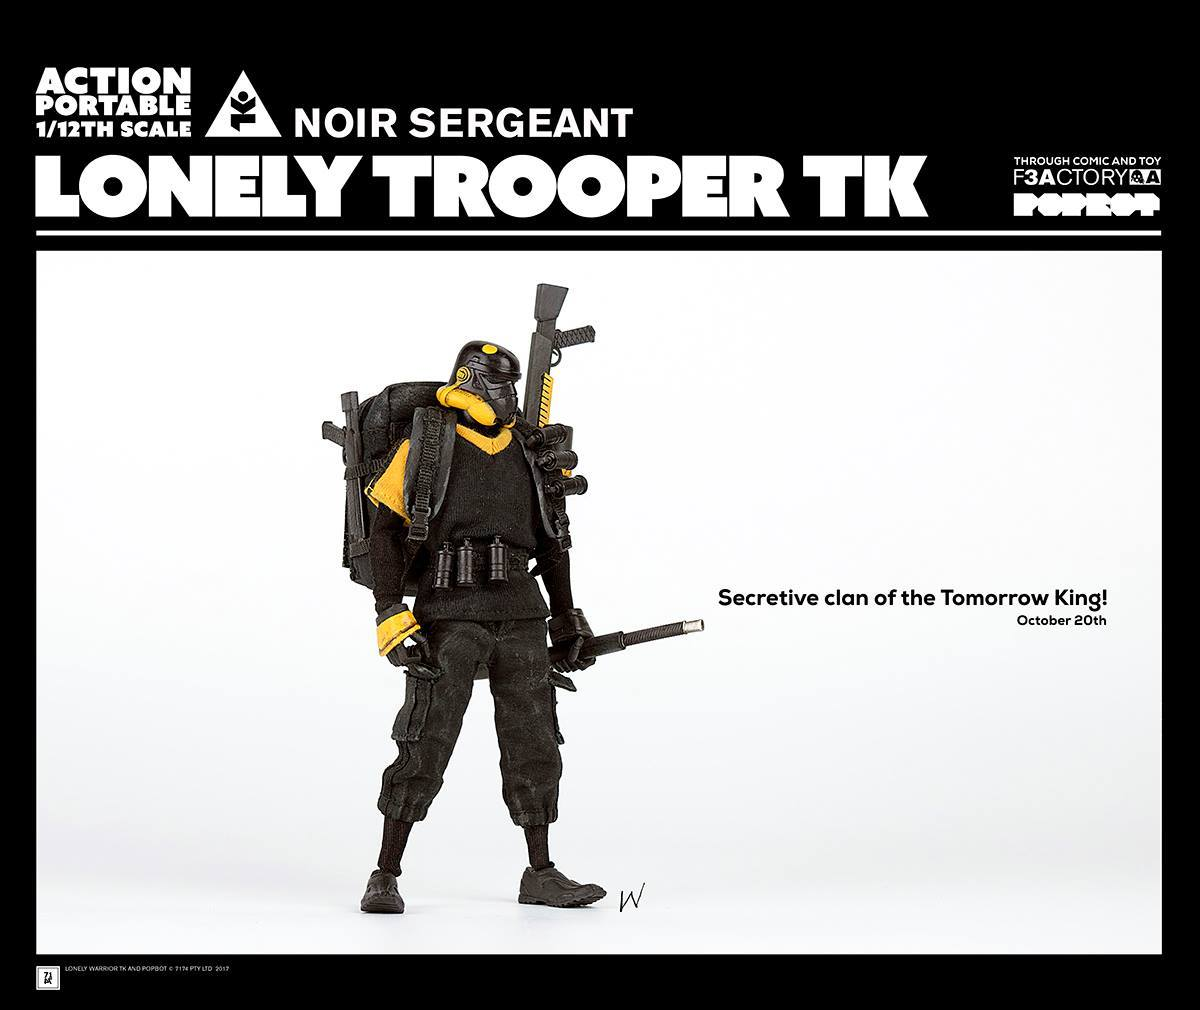 ThreeA - Action Portable by F3Actory - Lonely Trooper TK Noir Sergeant